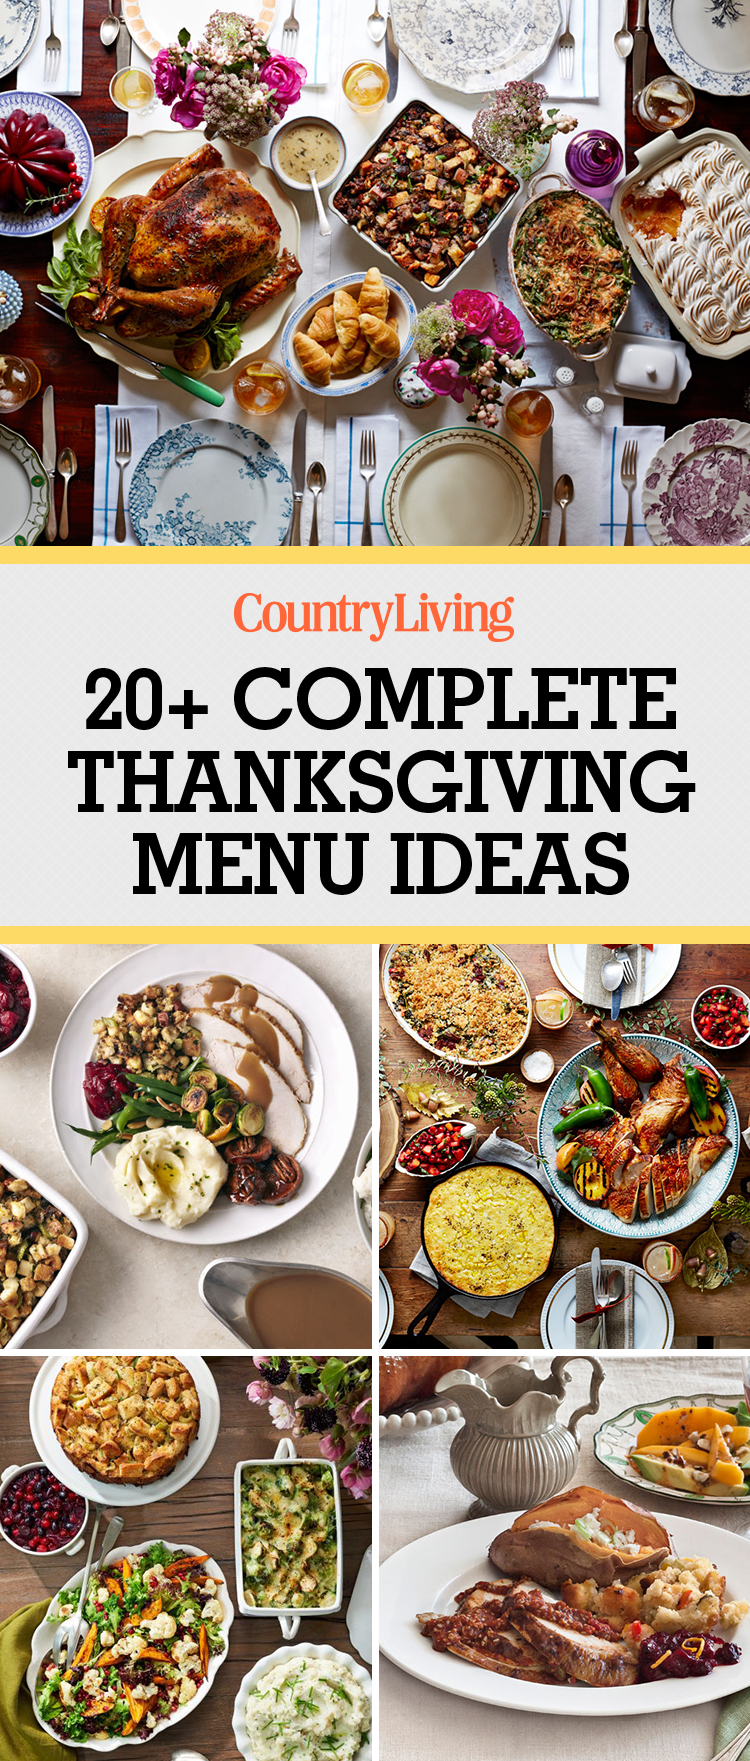 28 Thanksgiving Menus That Will Make November So Much Easier #menus